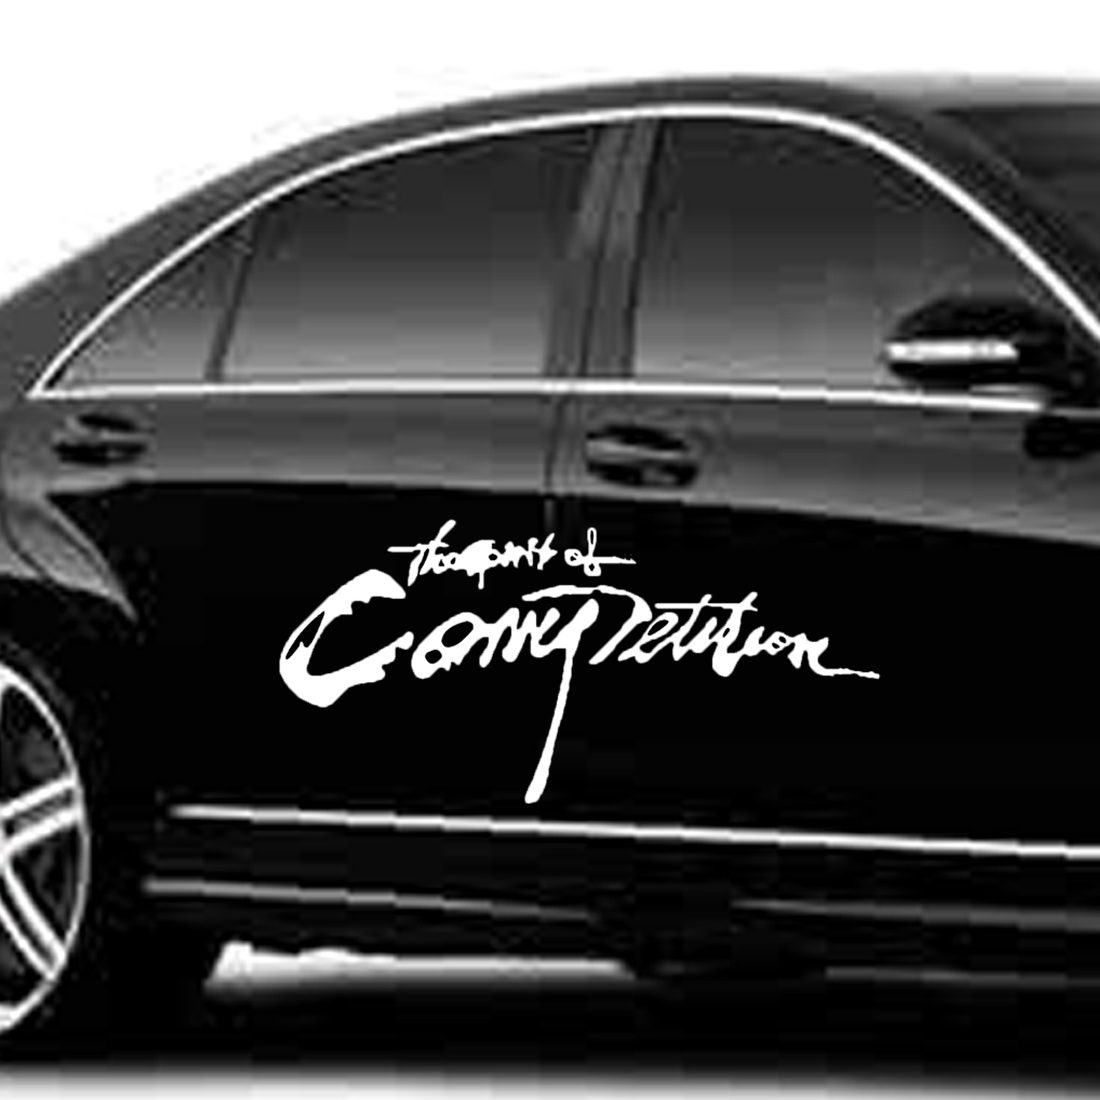 Dewtreetali 2018 Hot Sale Car Styling Sticker The Spirition of Competition Car Stickers Vinyl Decal Waterproof 28*13cm